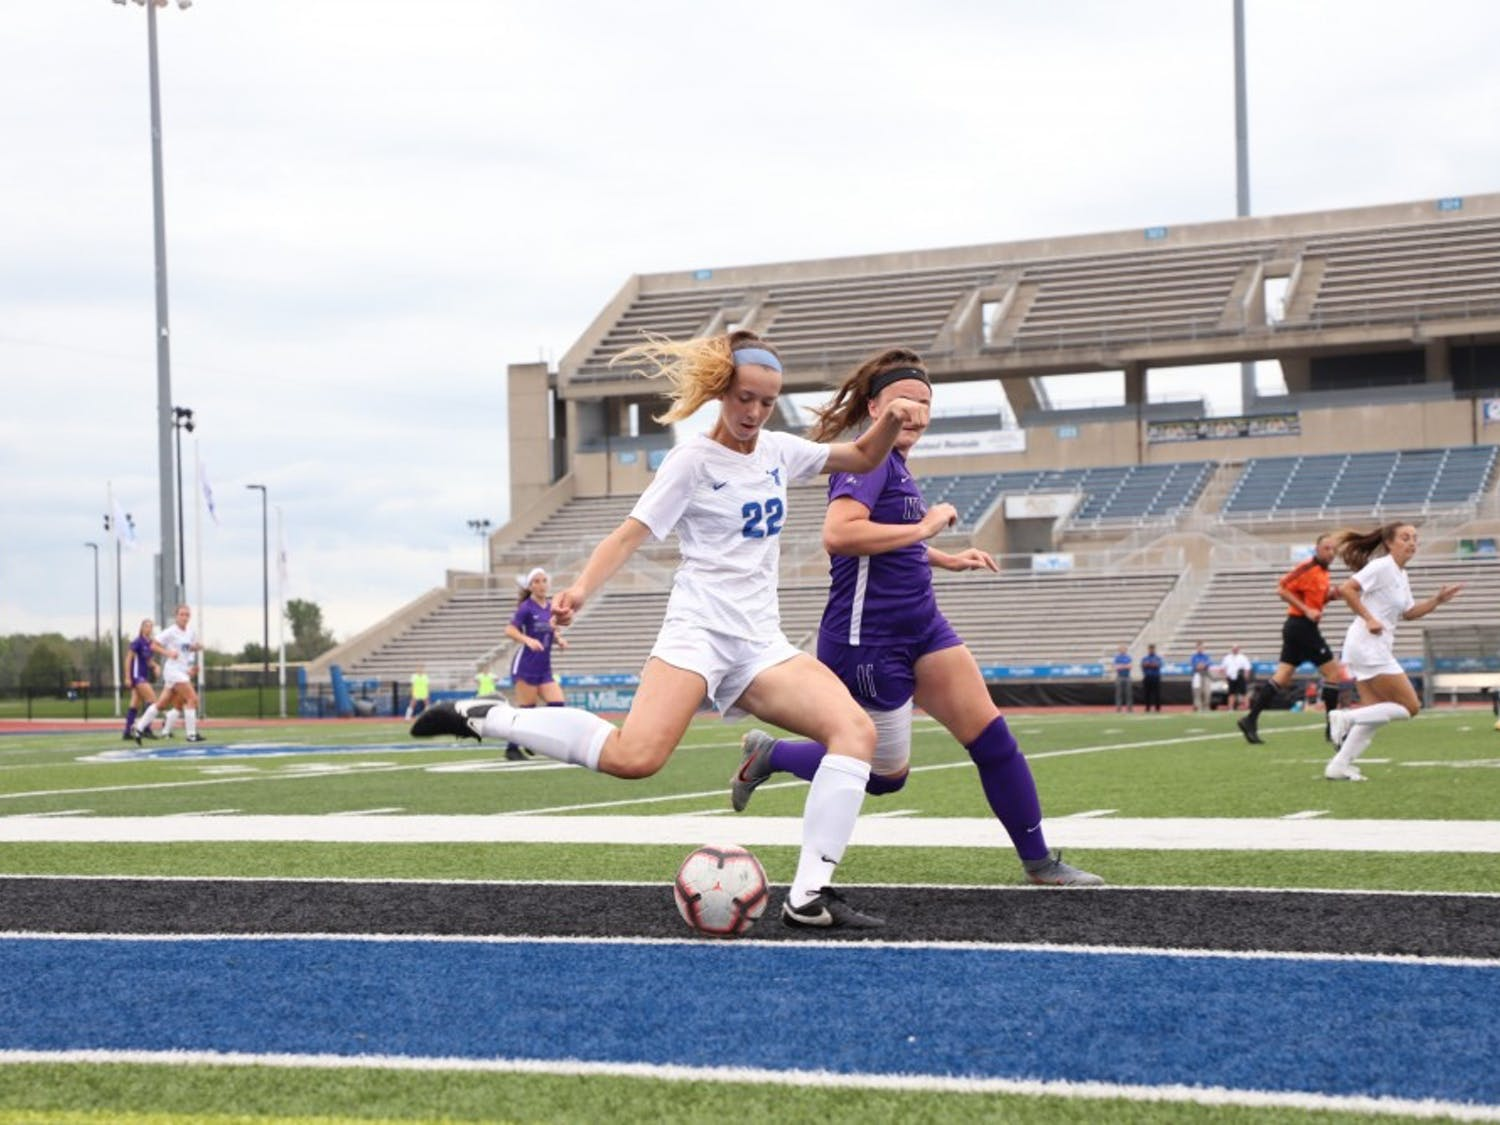 Tess Ford goes in for a challenge to win the possession back for UB.